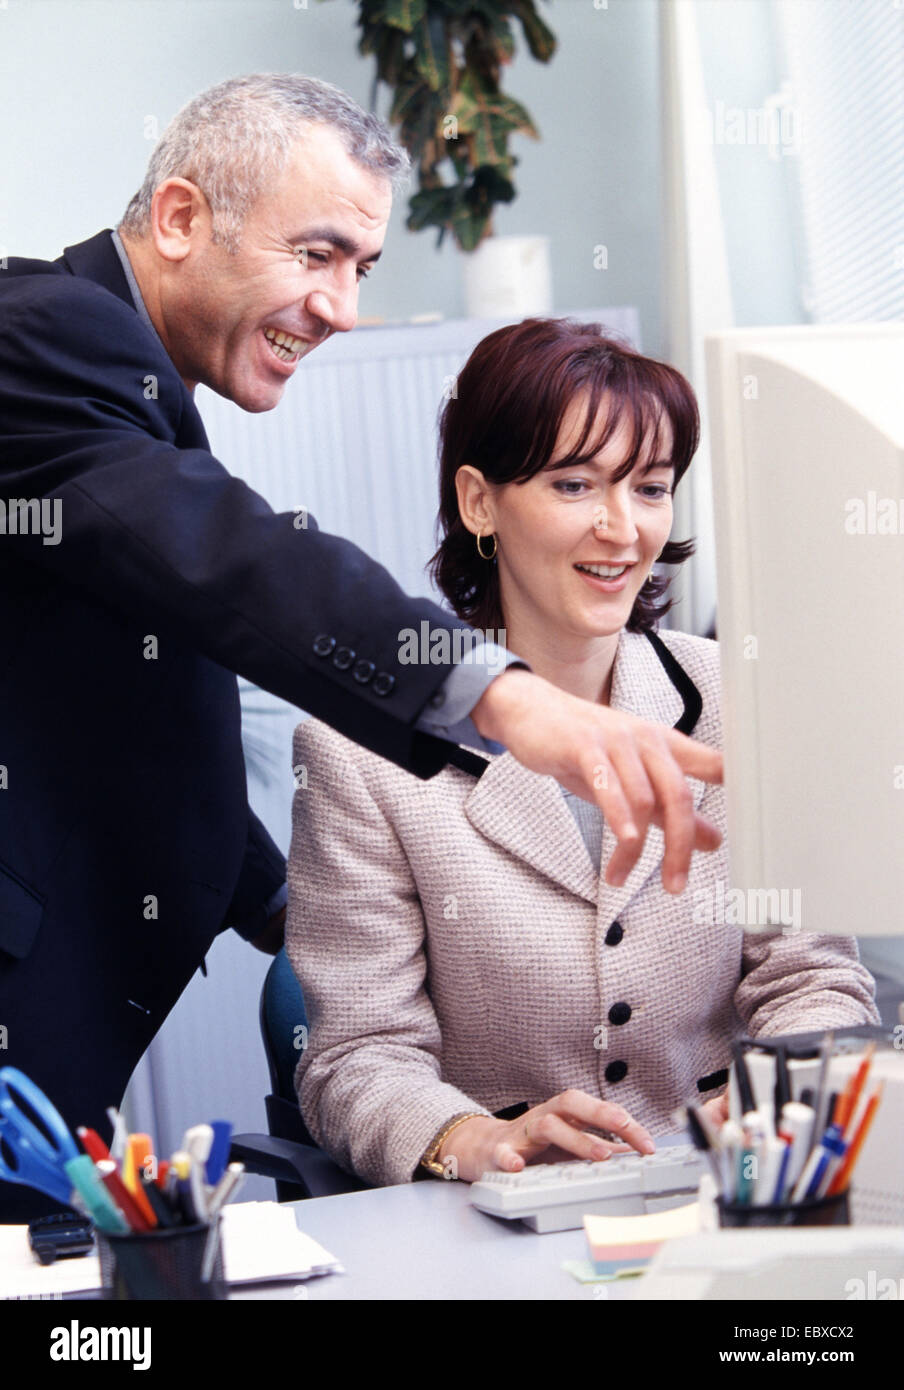 secretary and chief looking together to the PC - Stock Image